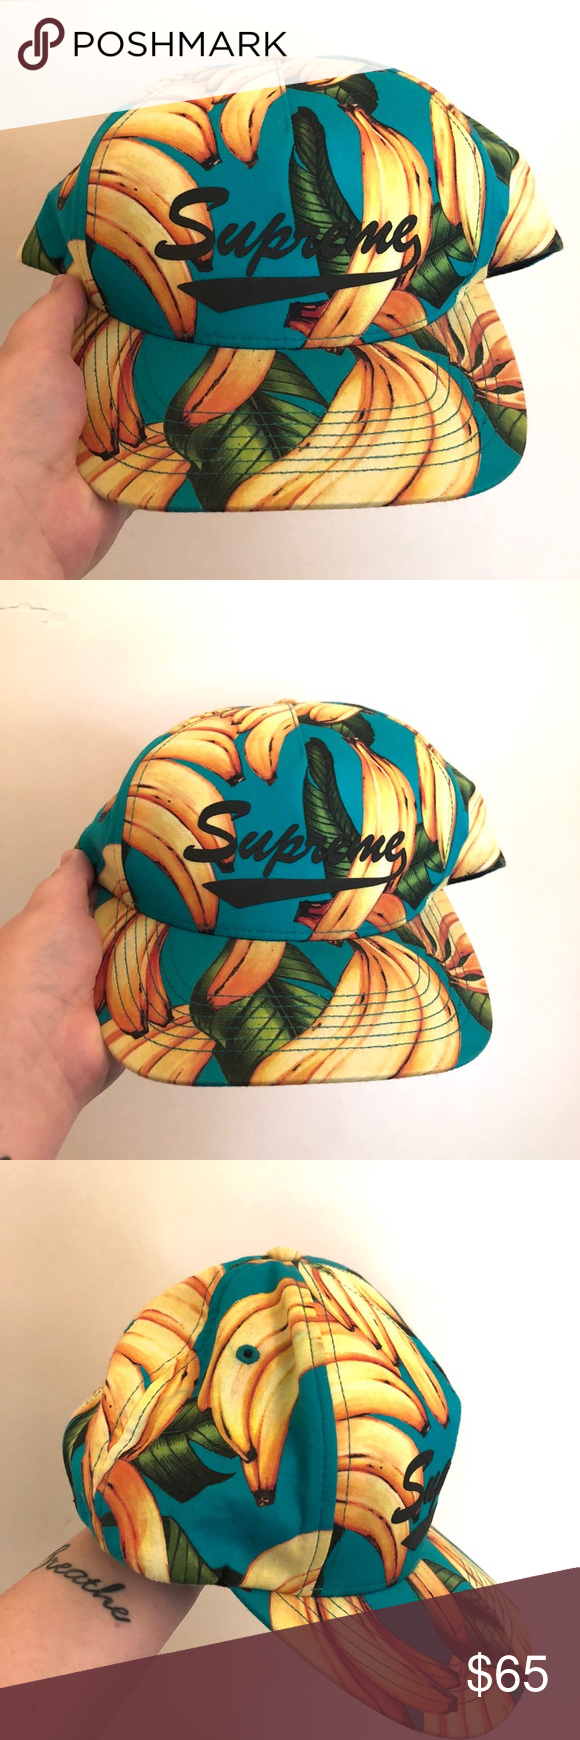 Supreme Banana Hat ✨can be worn by both Men and Women! ✨cute hat for the  summer and spring time ✨brim to back snap  roughly 10.5 inches ✨cap itself   ... e379d27d0a5